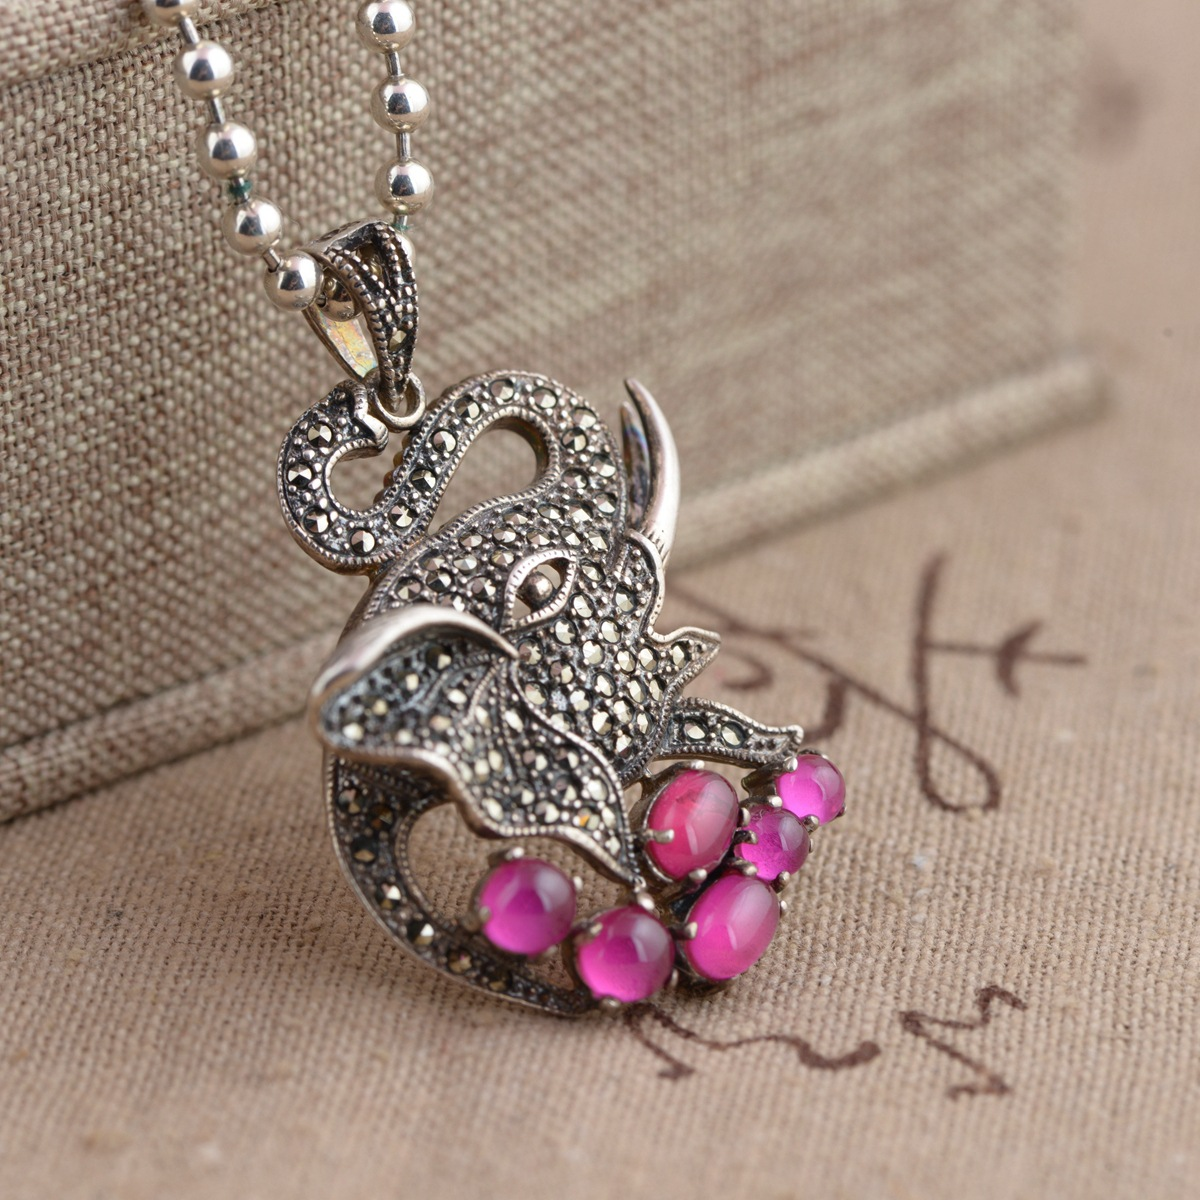 S925 silver inlaid garnet exquisite female Elephant Pendant [silver] silver deer king s925 wholesale silver inlaid red corundum garnet pendant female peacock